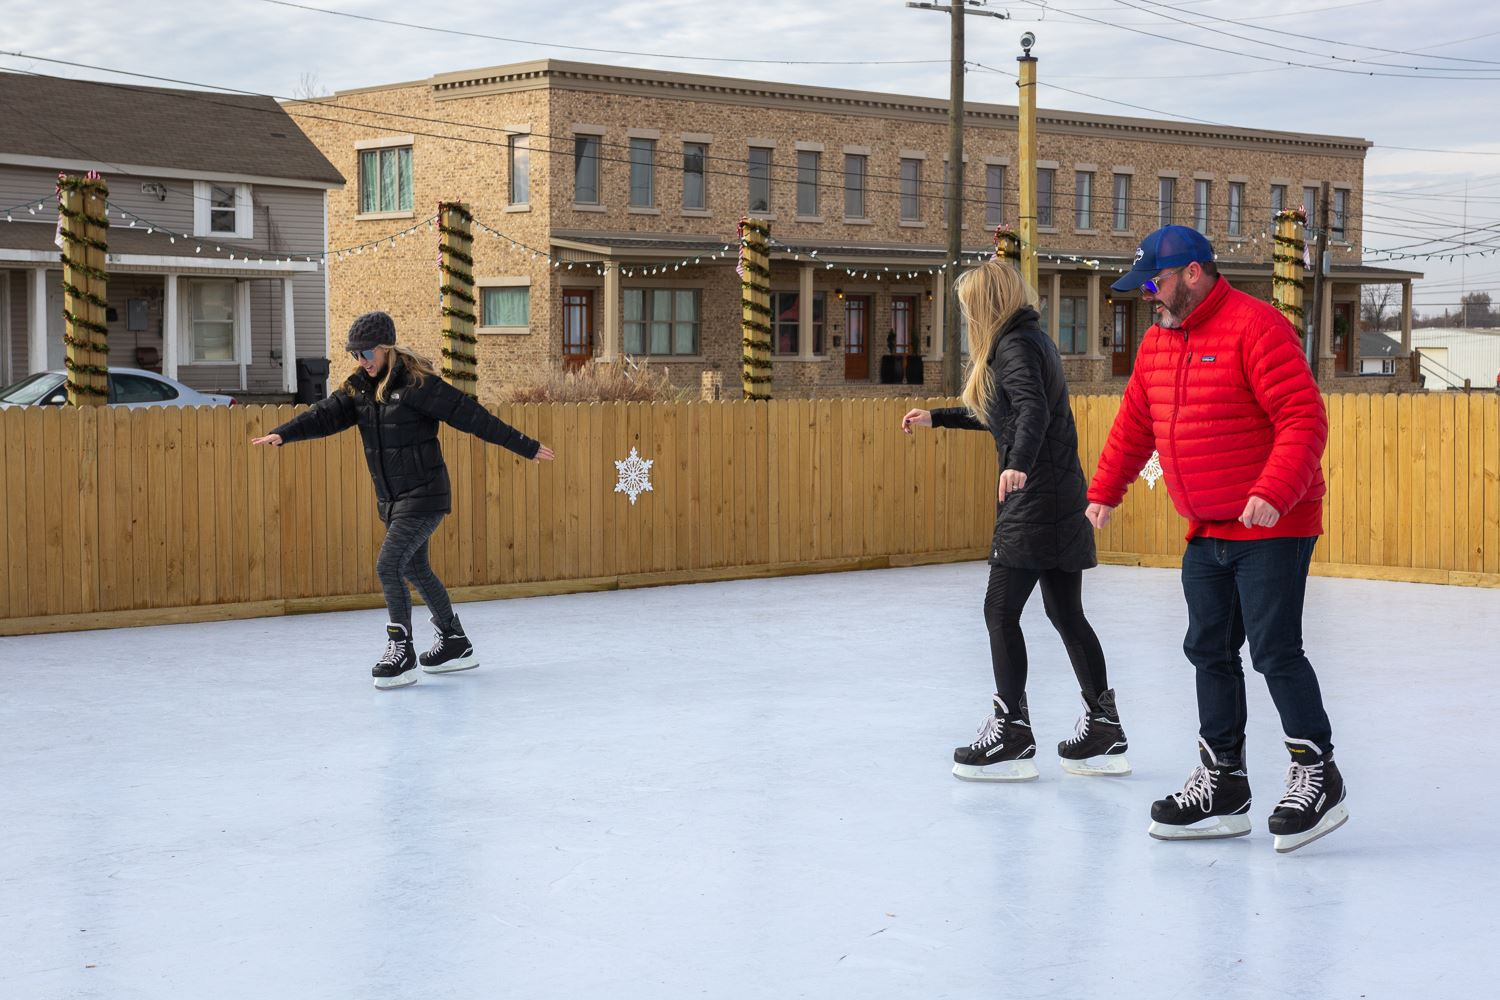 People skating on faux ice at the rink